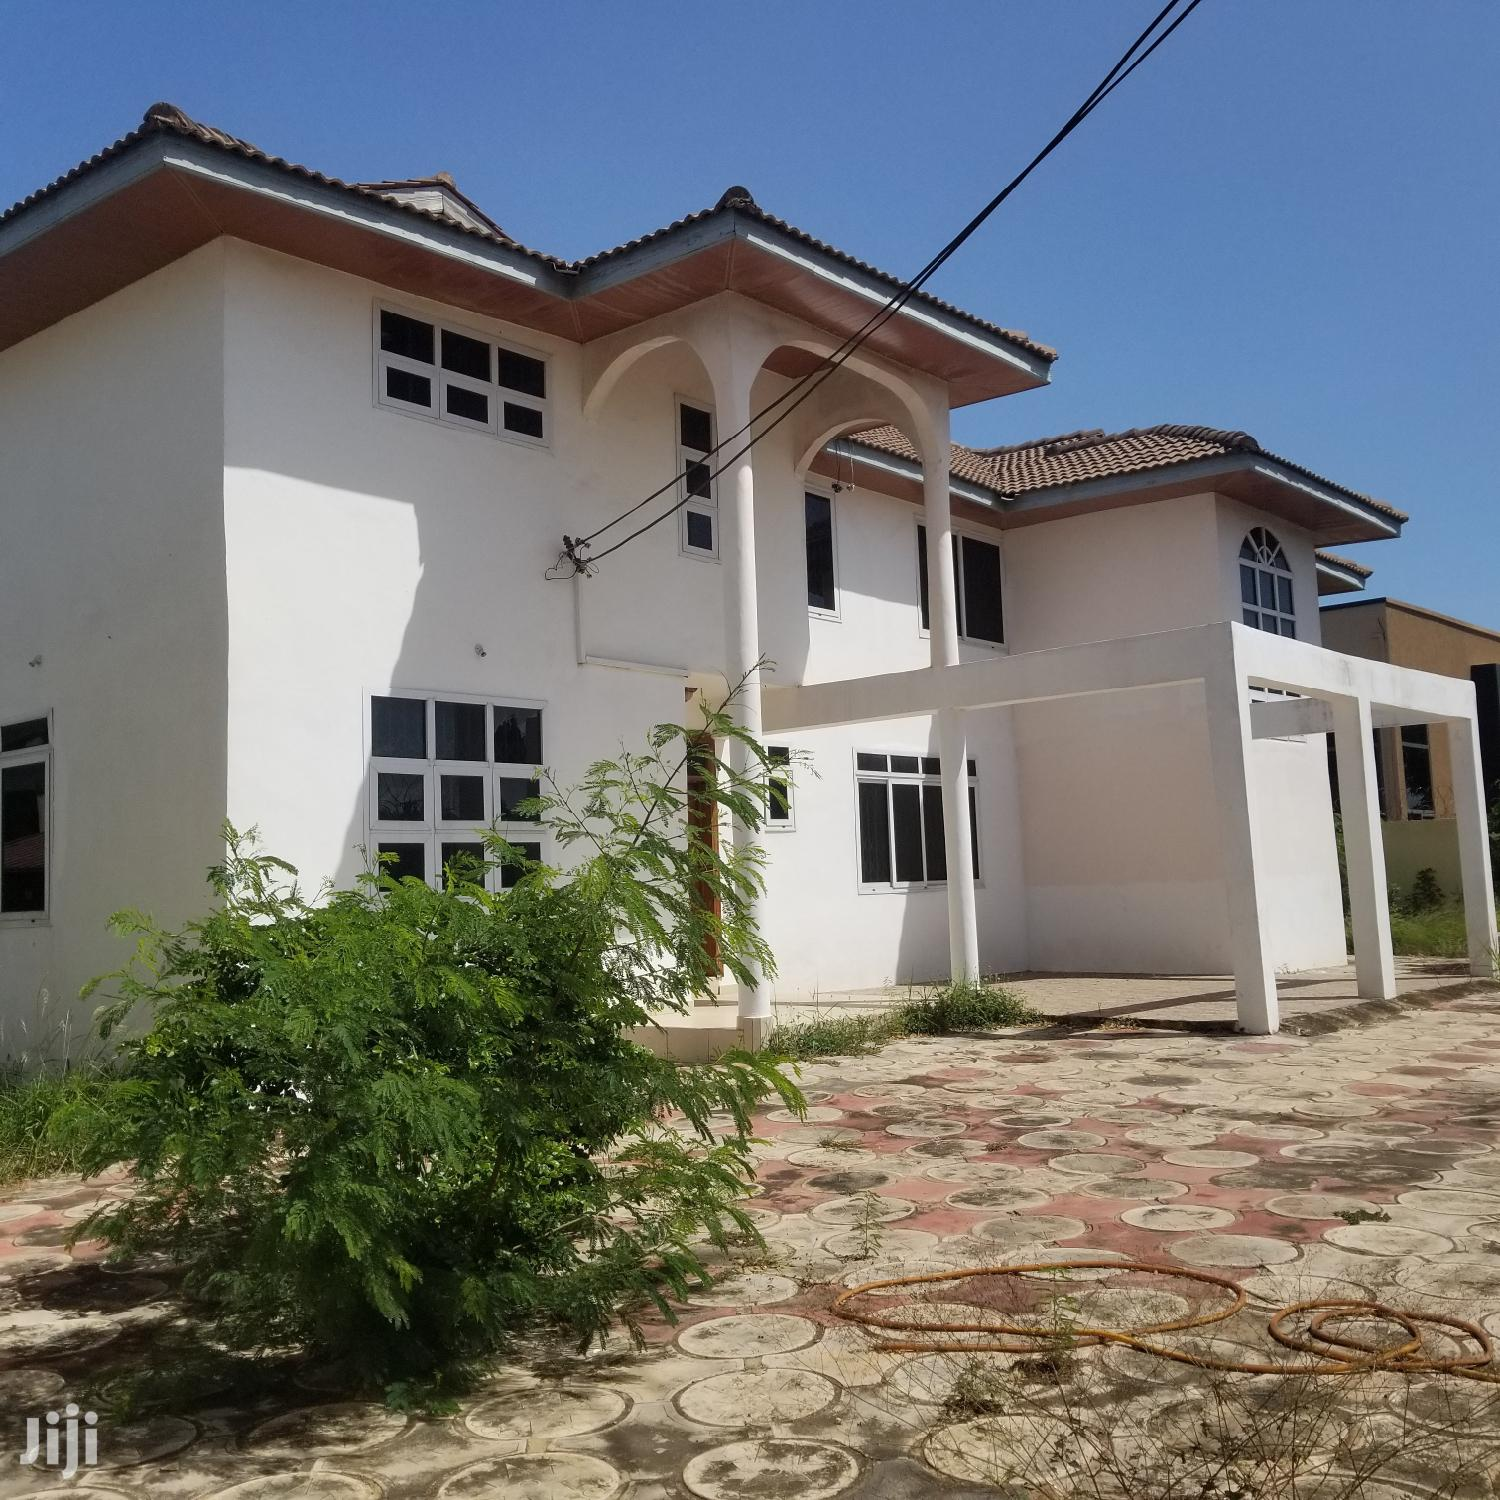 5 Bedroom Duplex | Houses & Apartments For Sale for sale in Accra Metropolitan, Greater Accra, Ghana